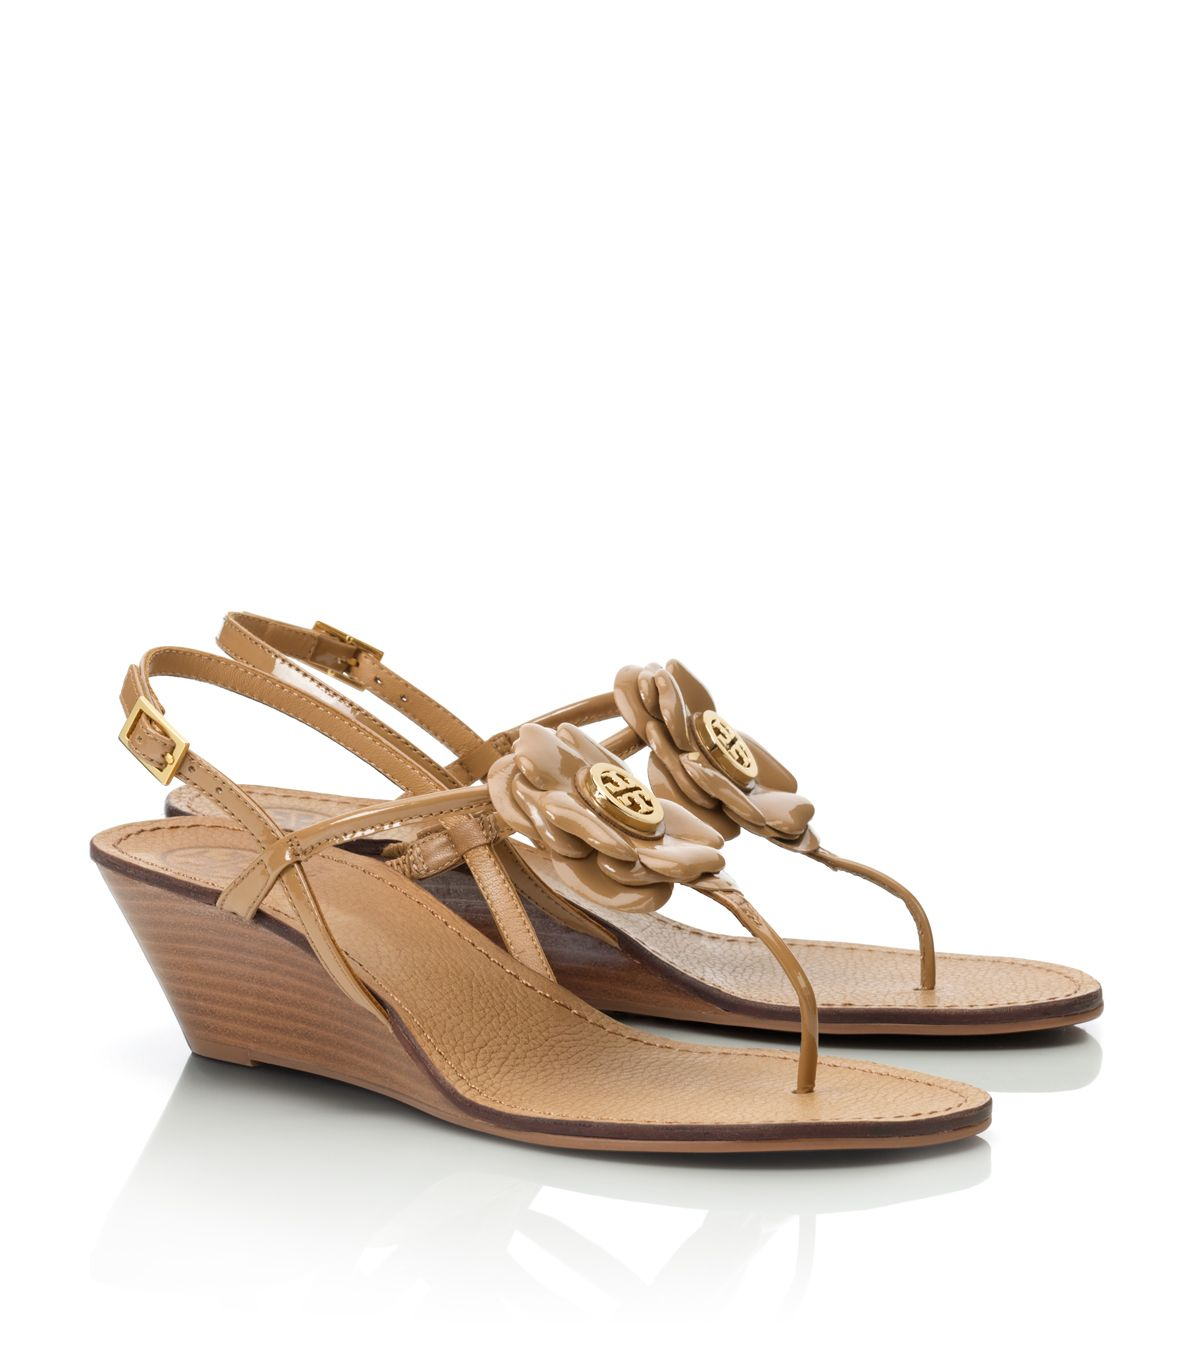 Lyst Tory Burch Mid Wedge Shelby Sandal In Brown